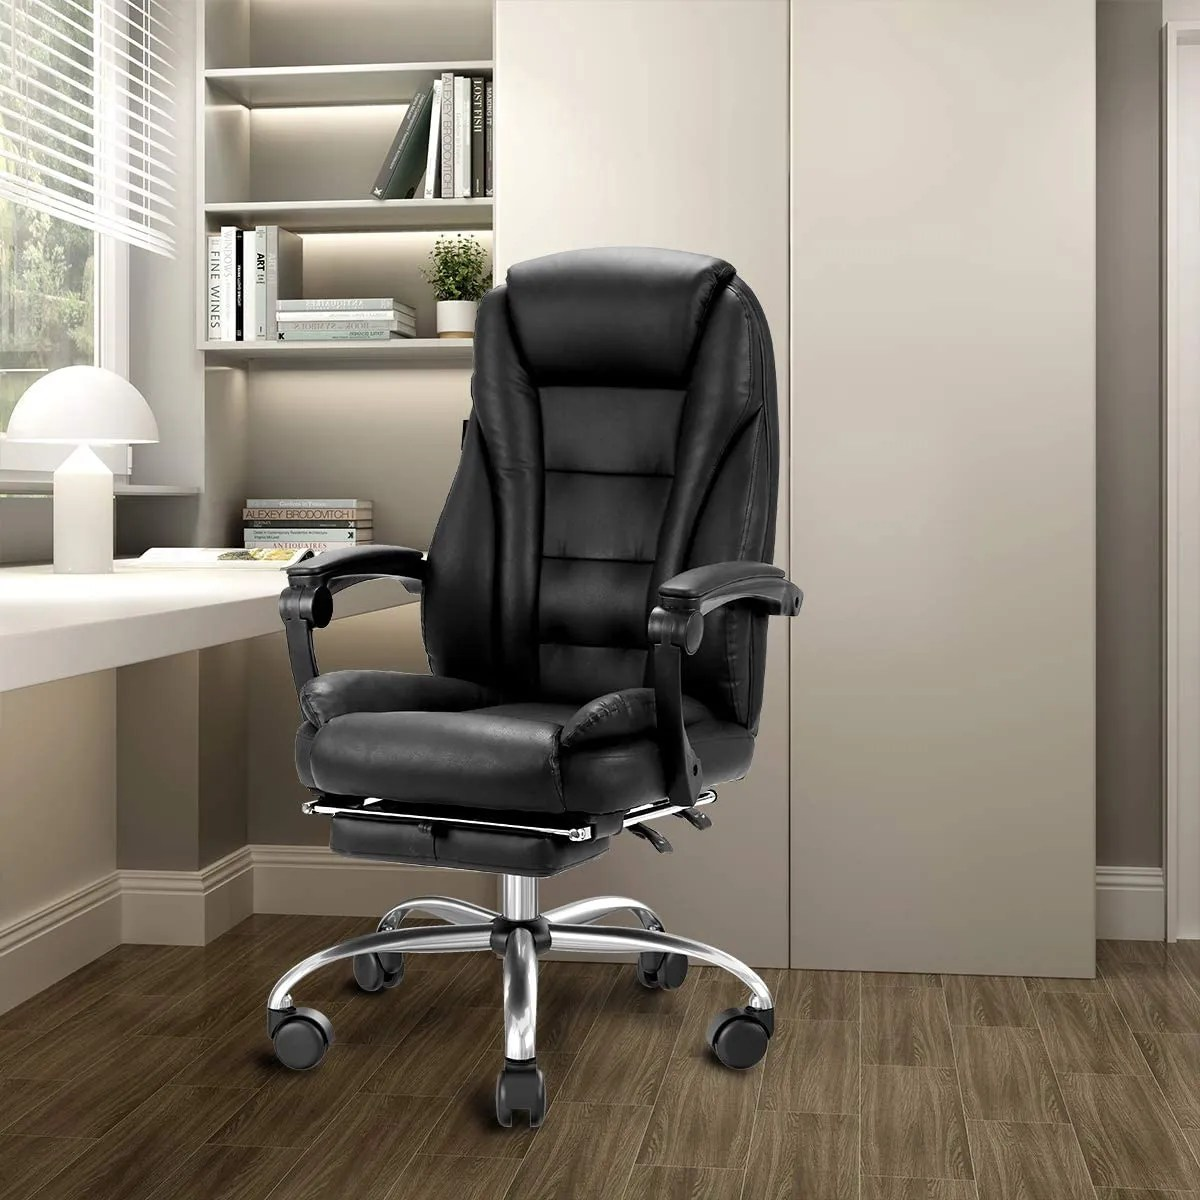 12 Best Reclining Office Chairs With Footrests